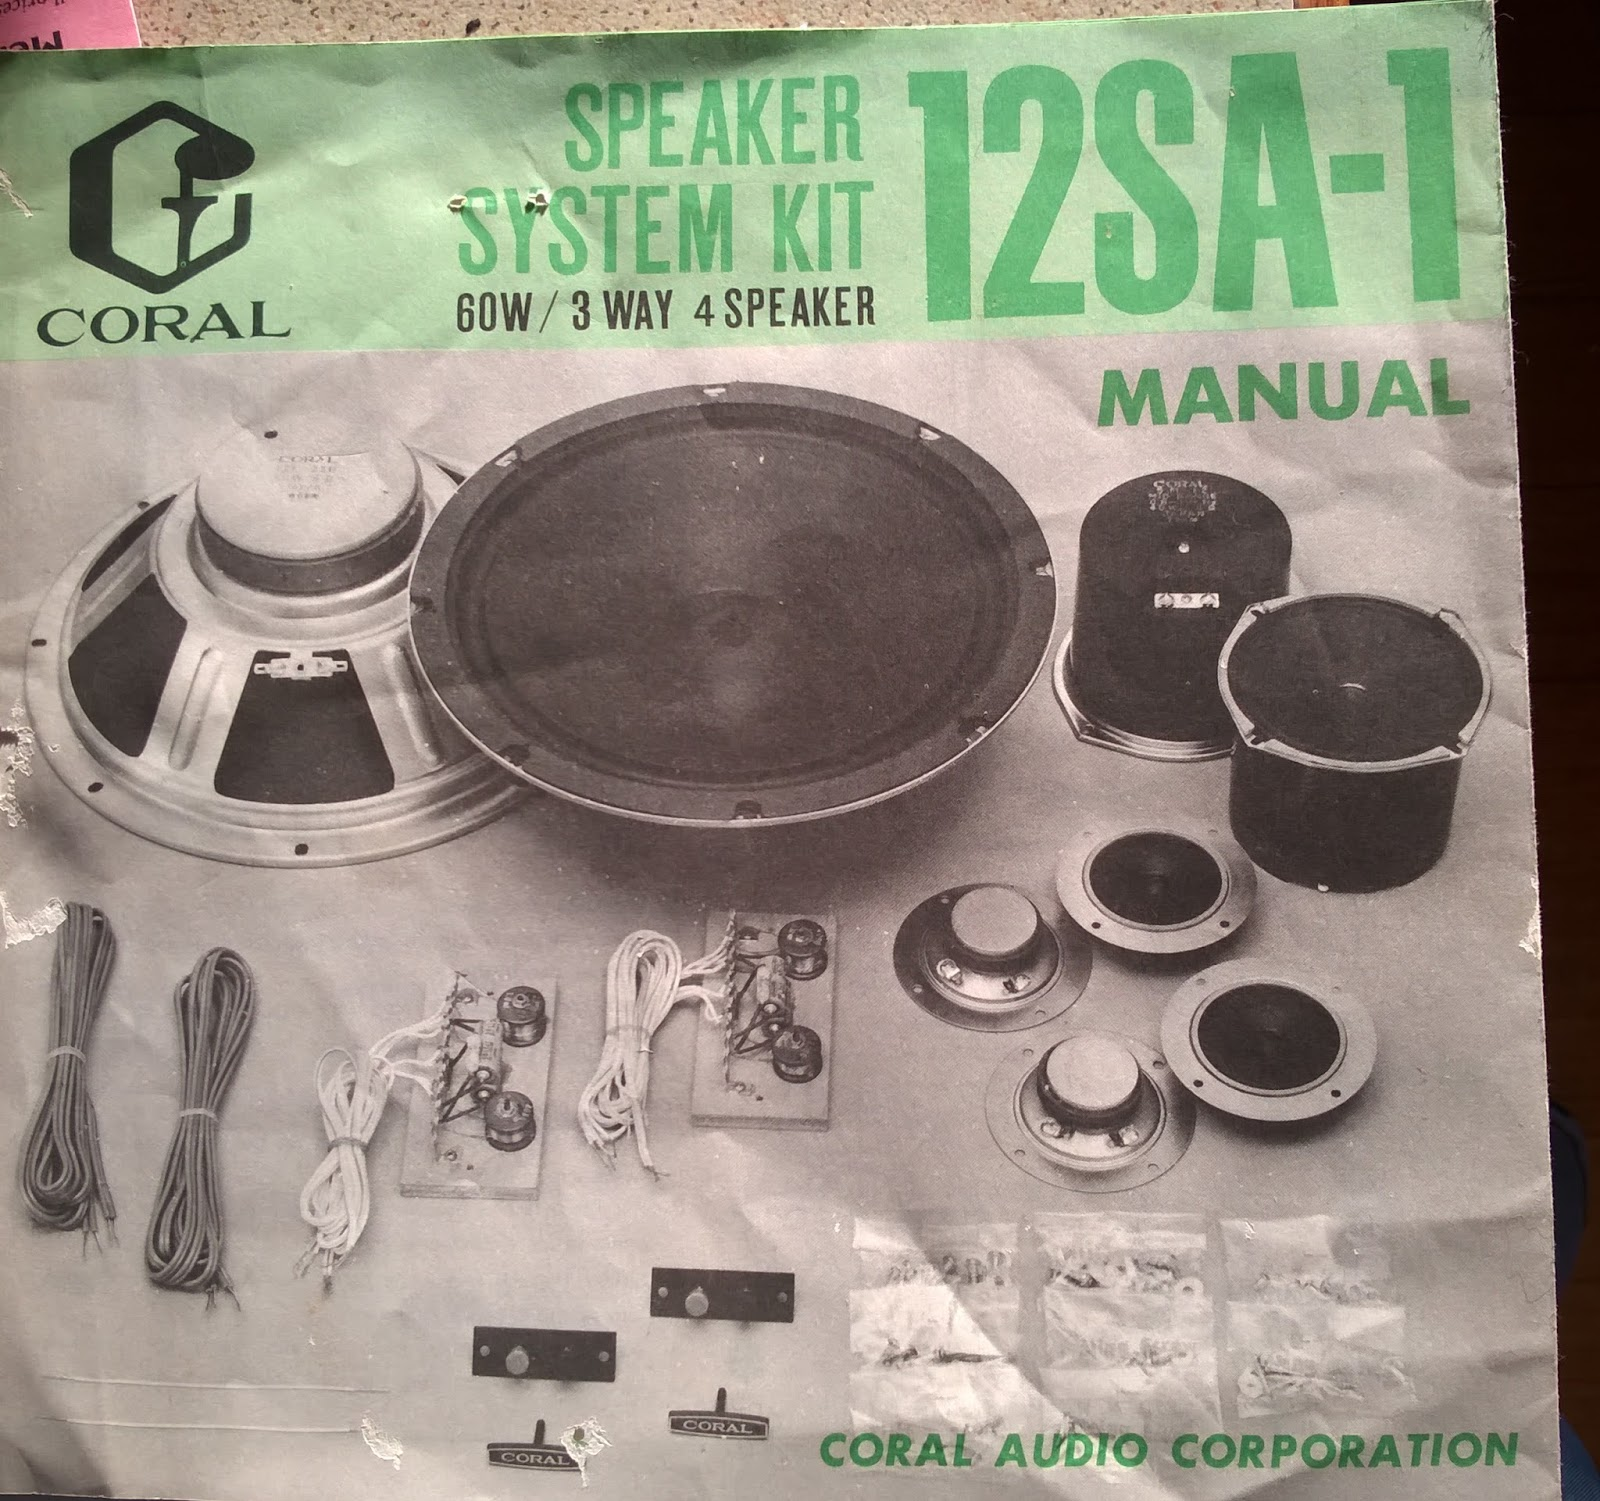 Who wants to be an Audiophile?: Coral 12SA-1 speaker kit user manual